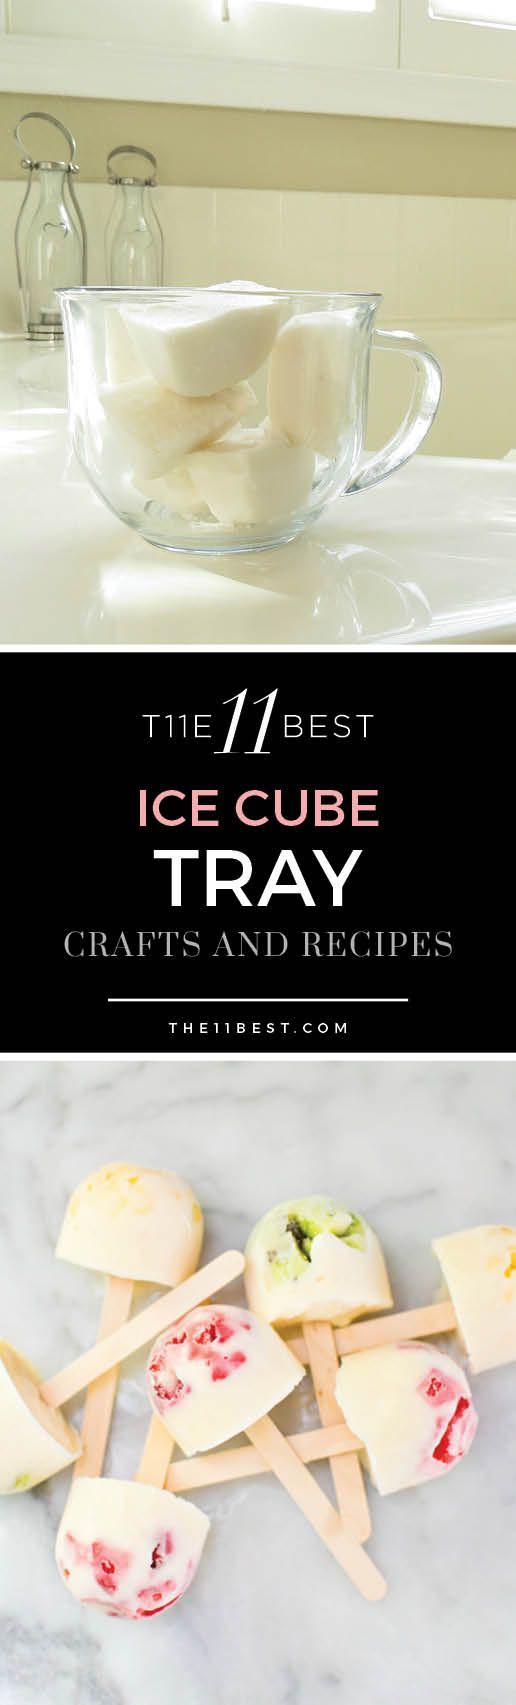 The 11 Best Uses For Ice Cube Trays